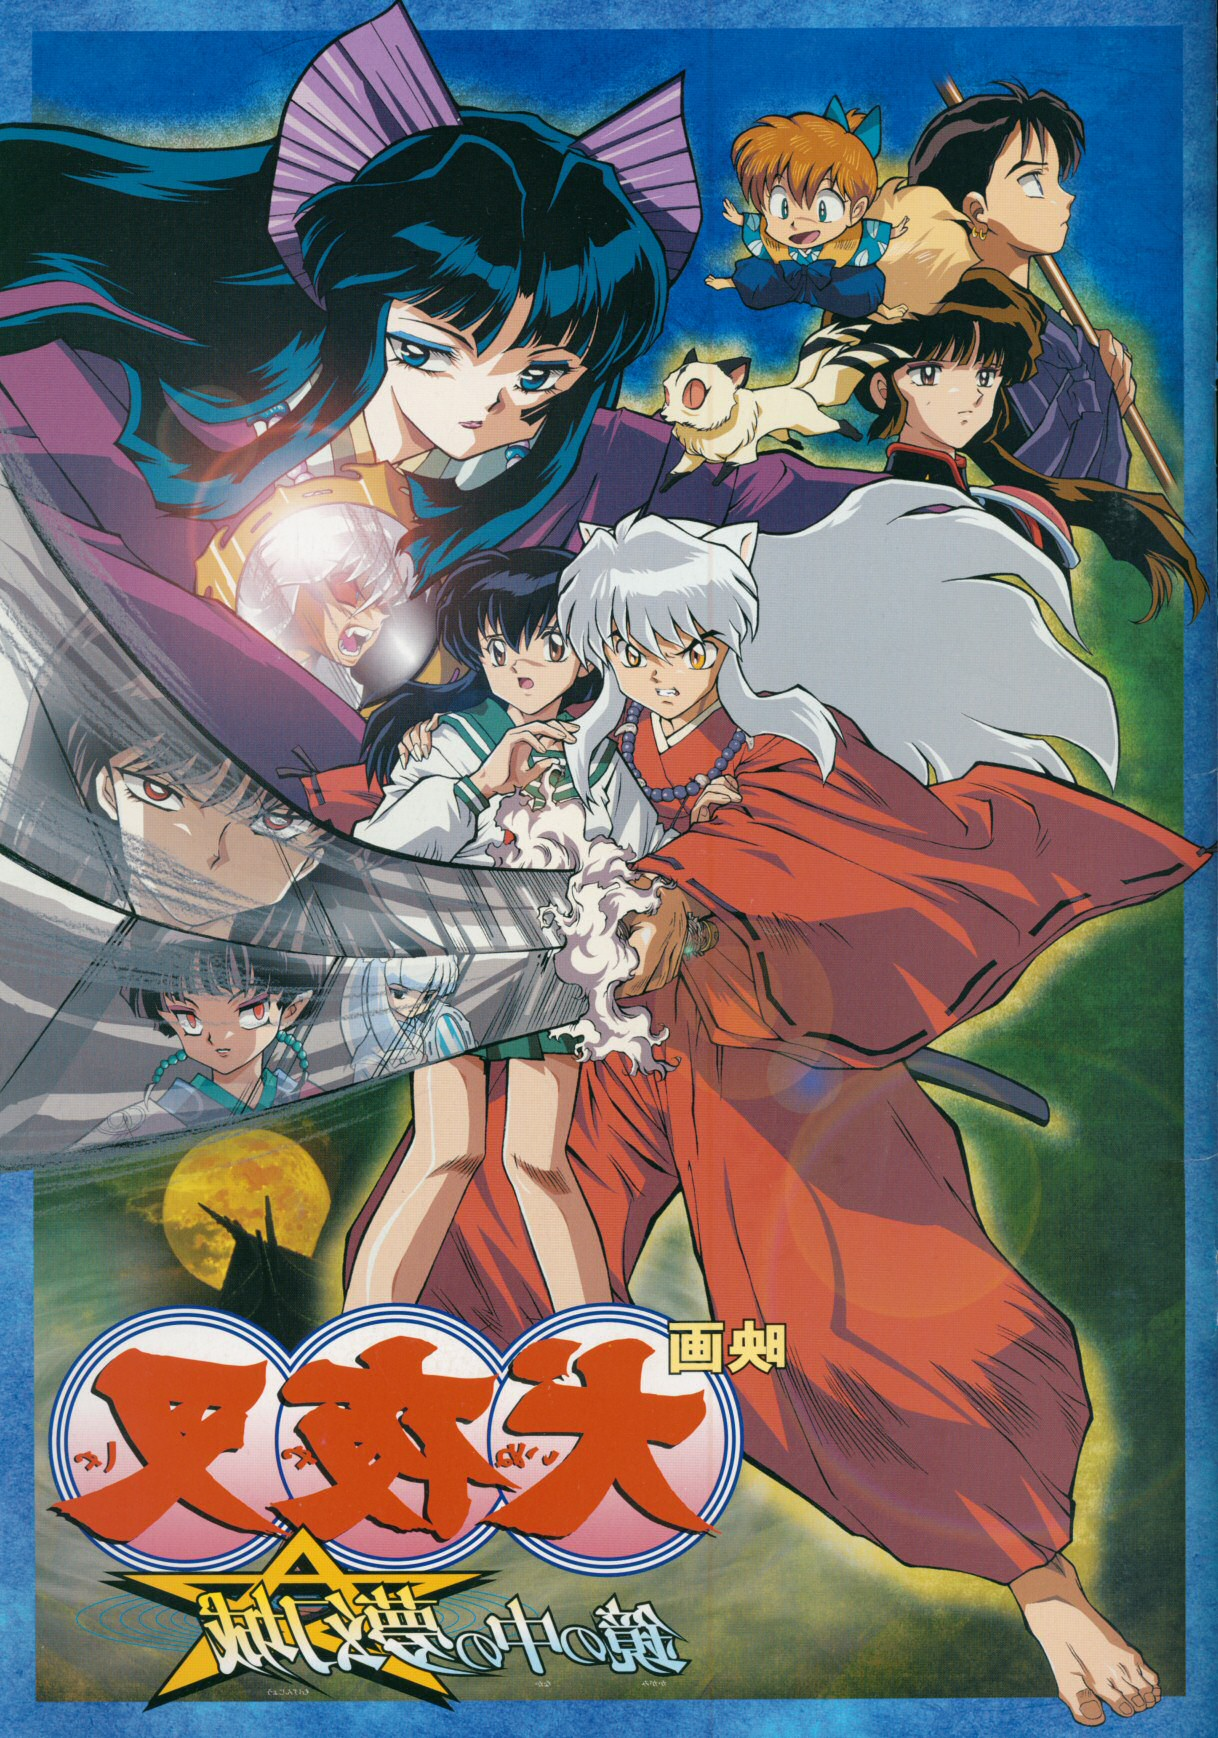 inuyasha movie 2 movie search engine at searchcom